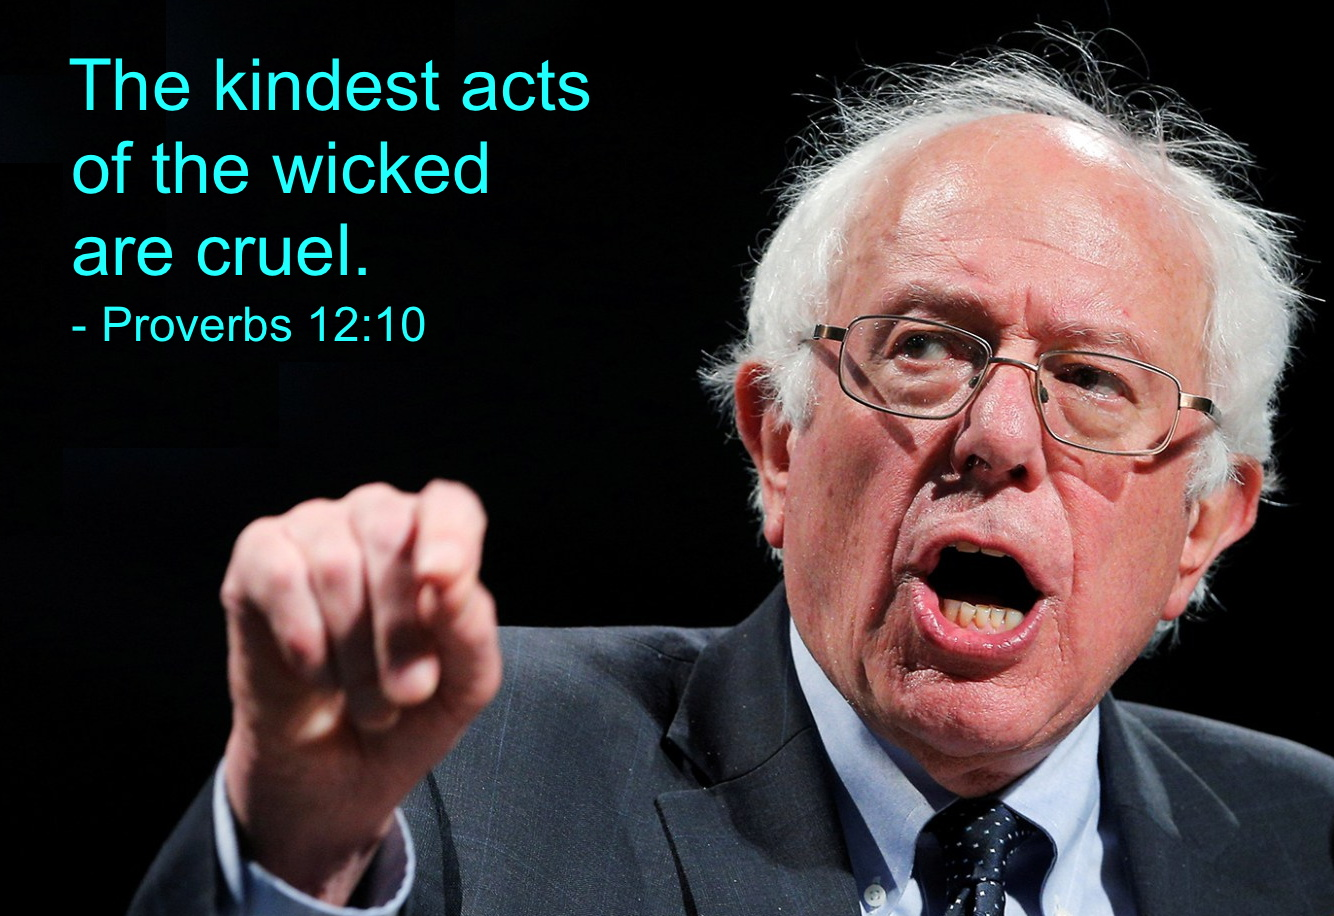 Proverbs 12:10 The kindest acts of the wicked are cruel. Kinda reminds you of Bernie Sanders.